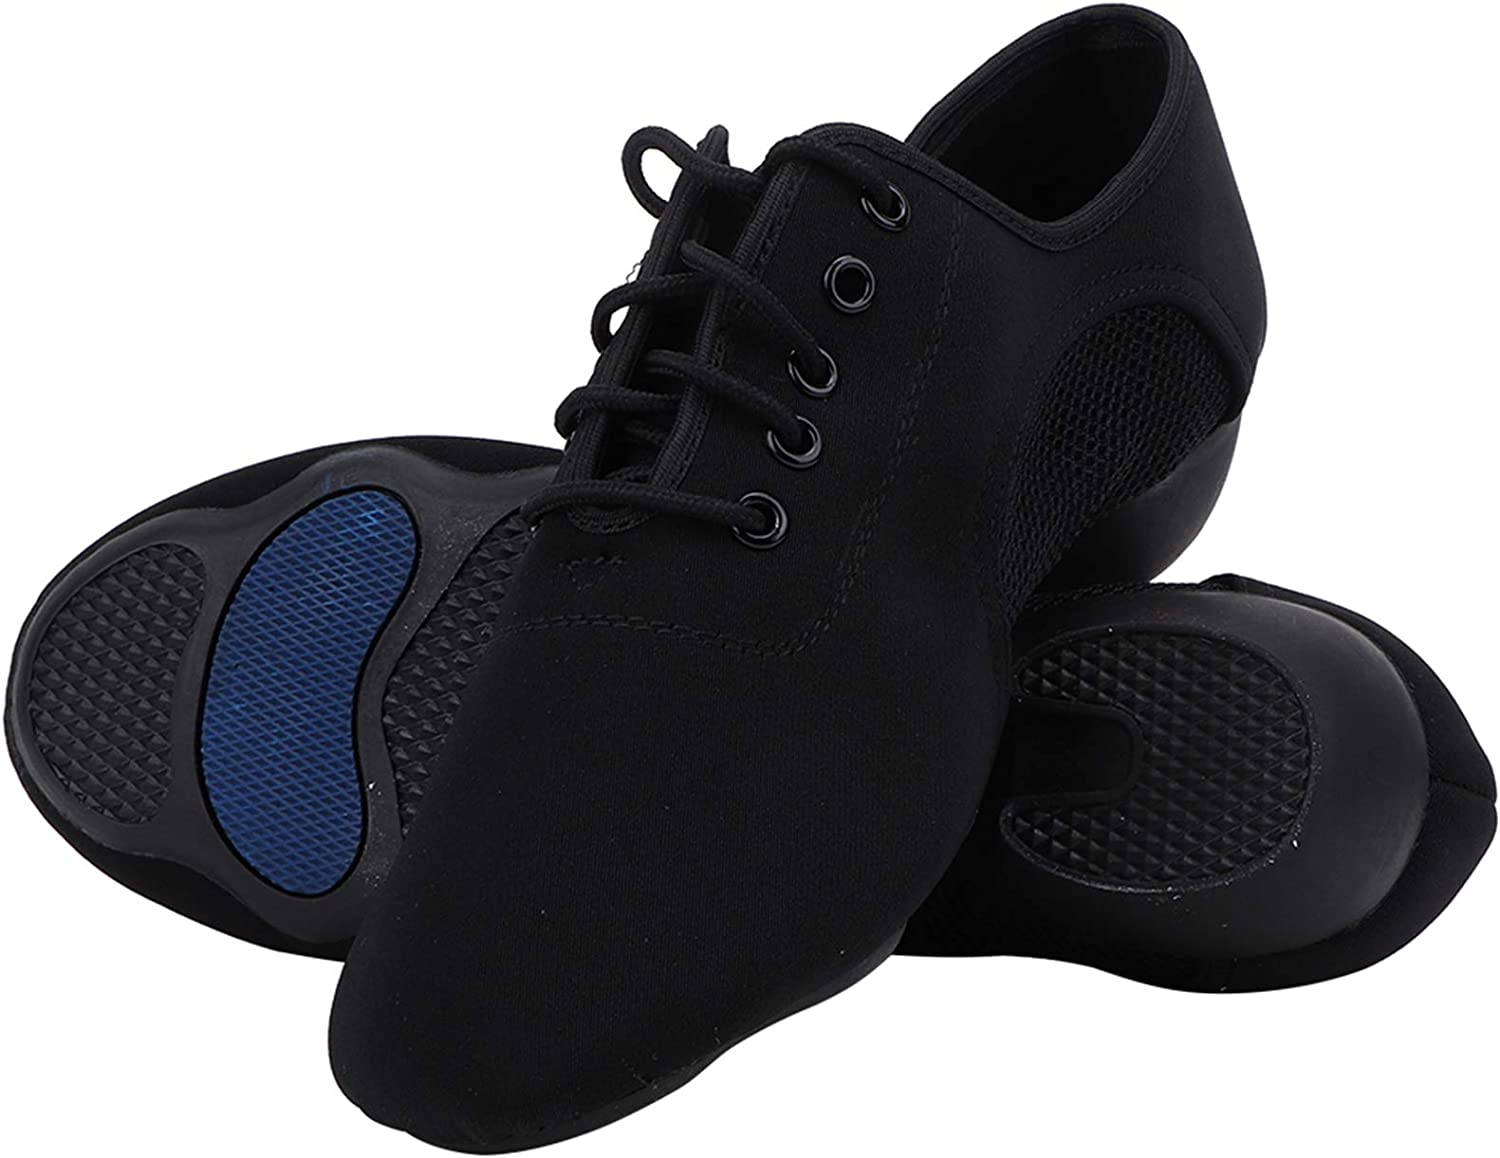 Soft Comfortable Latin Shoes,Ballroom Jazz Shoes Breathable Lace up Modern Black Dancing Shoes Fashion Dance Shoe Oxford Cloth Teacher Shoes for Women & Men One Pair (44)